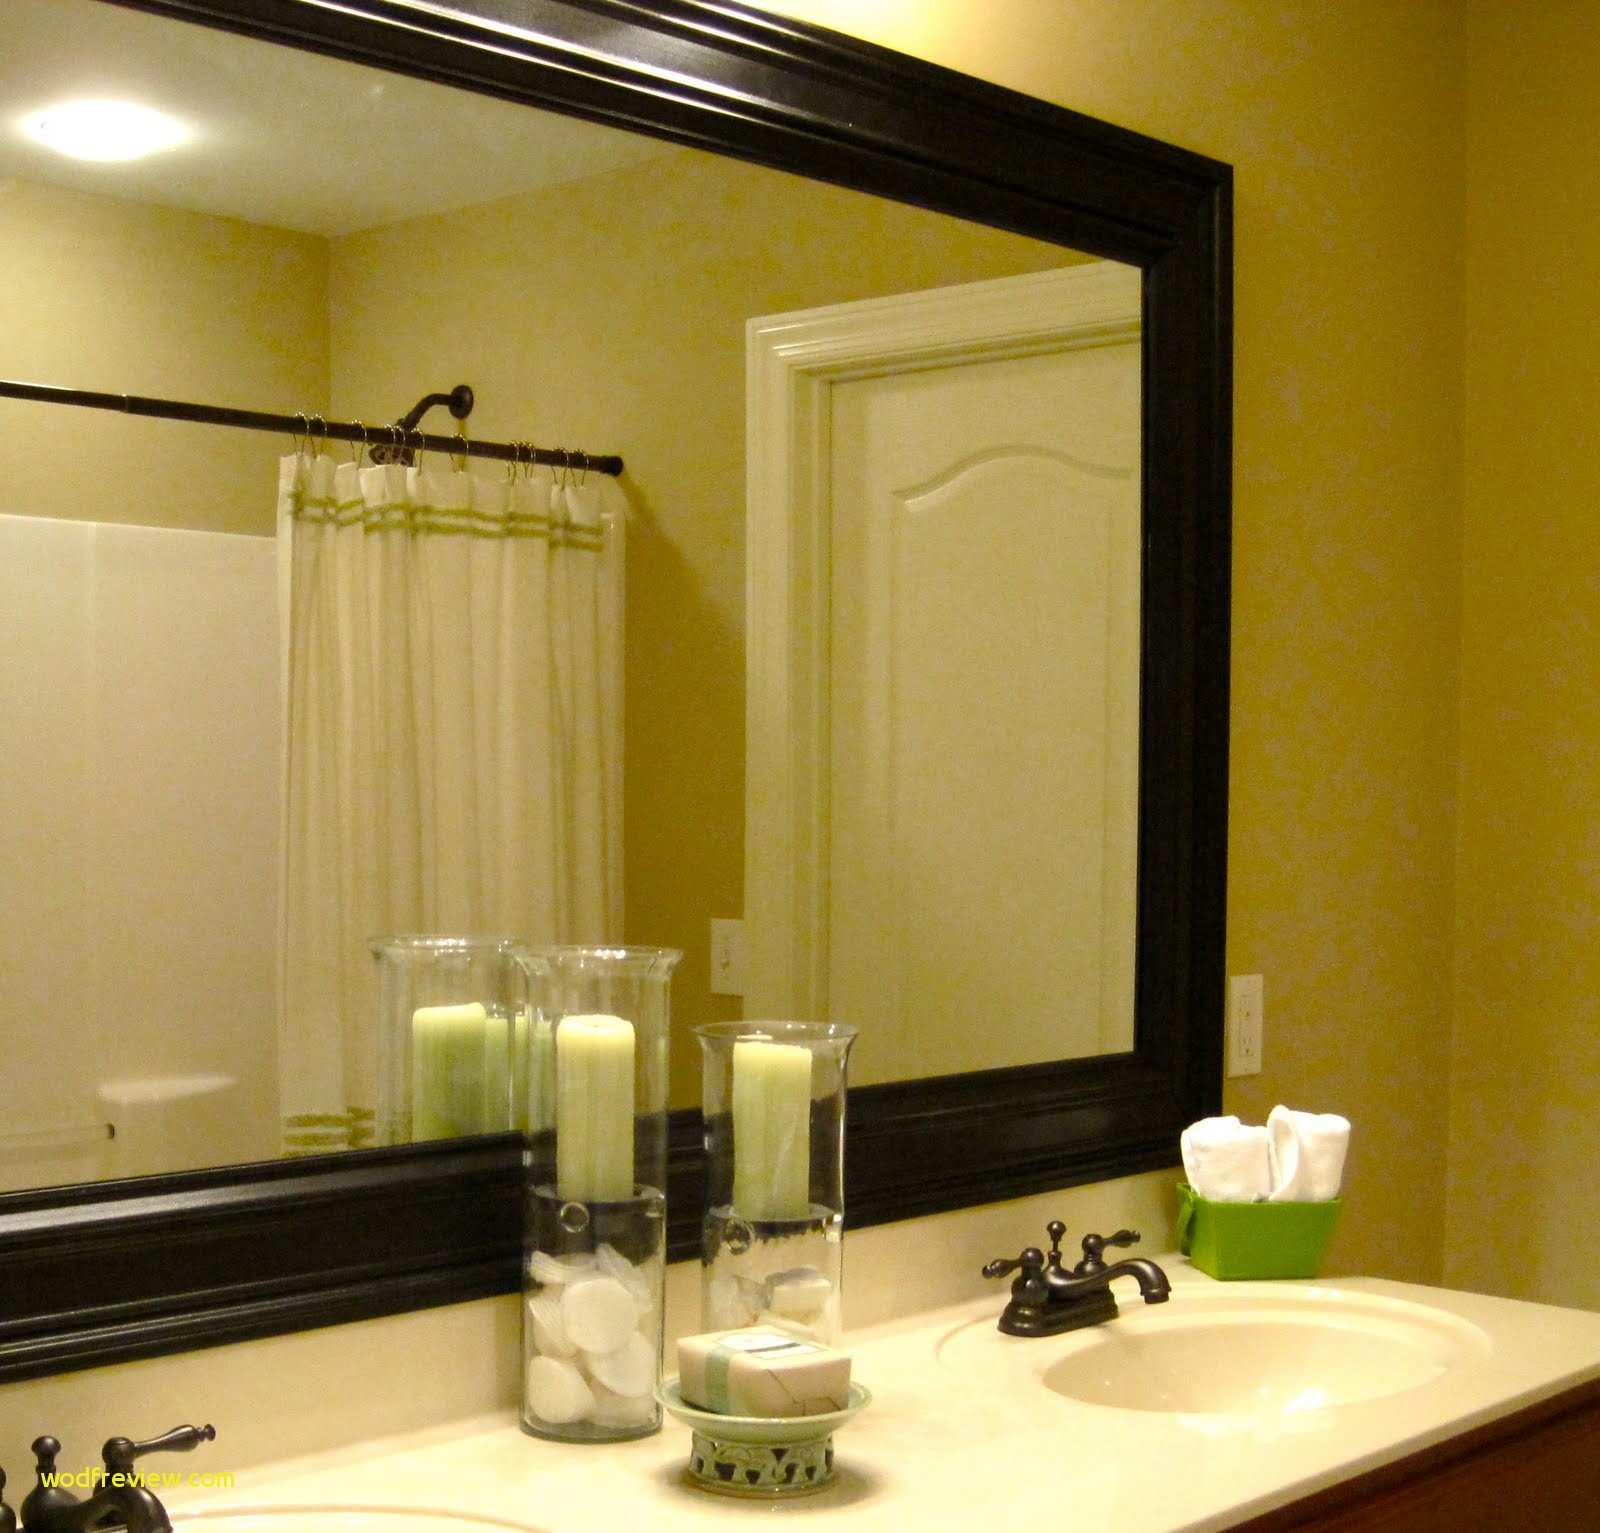 Bathroom Wall Covering Idea Fresh Mirror With Stainless Steel